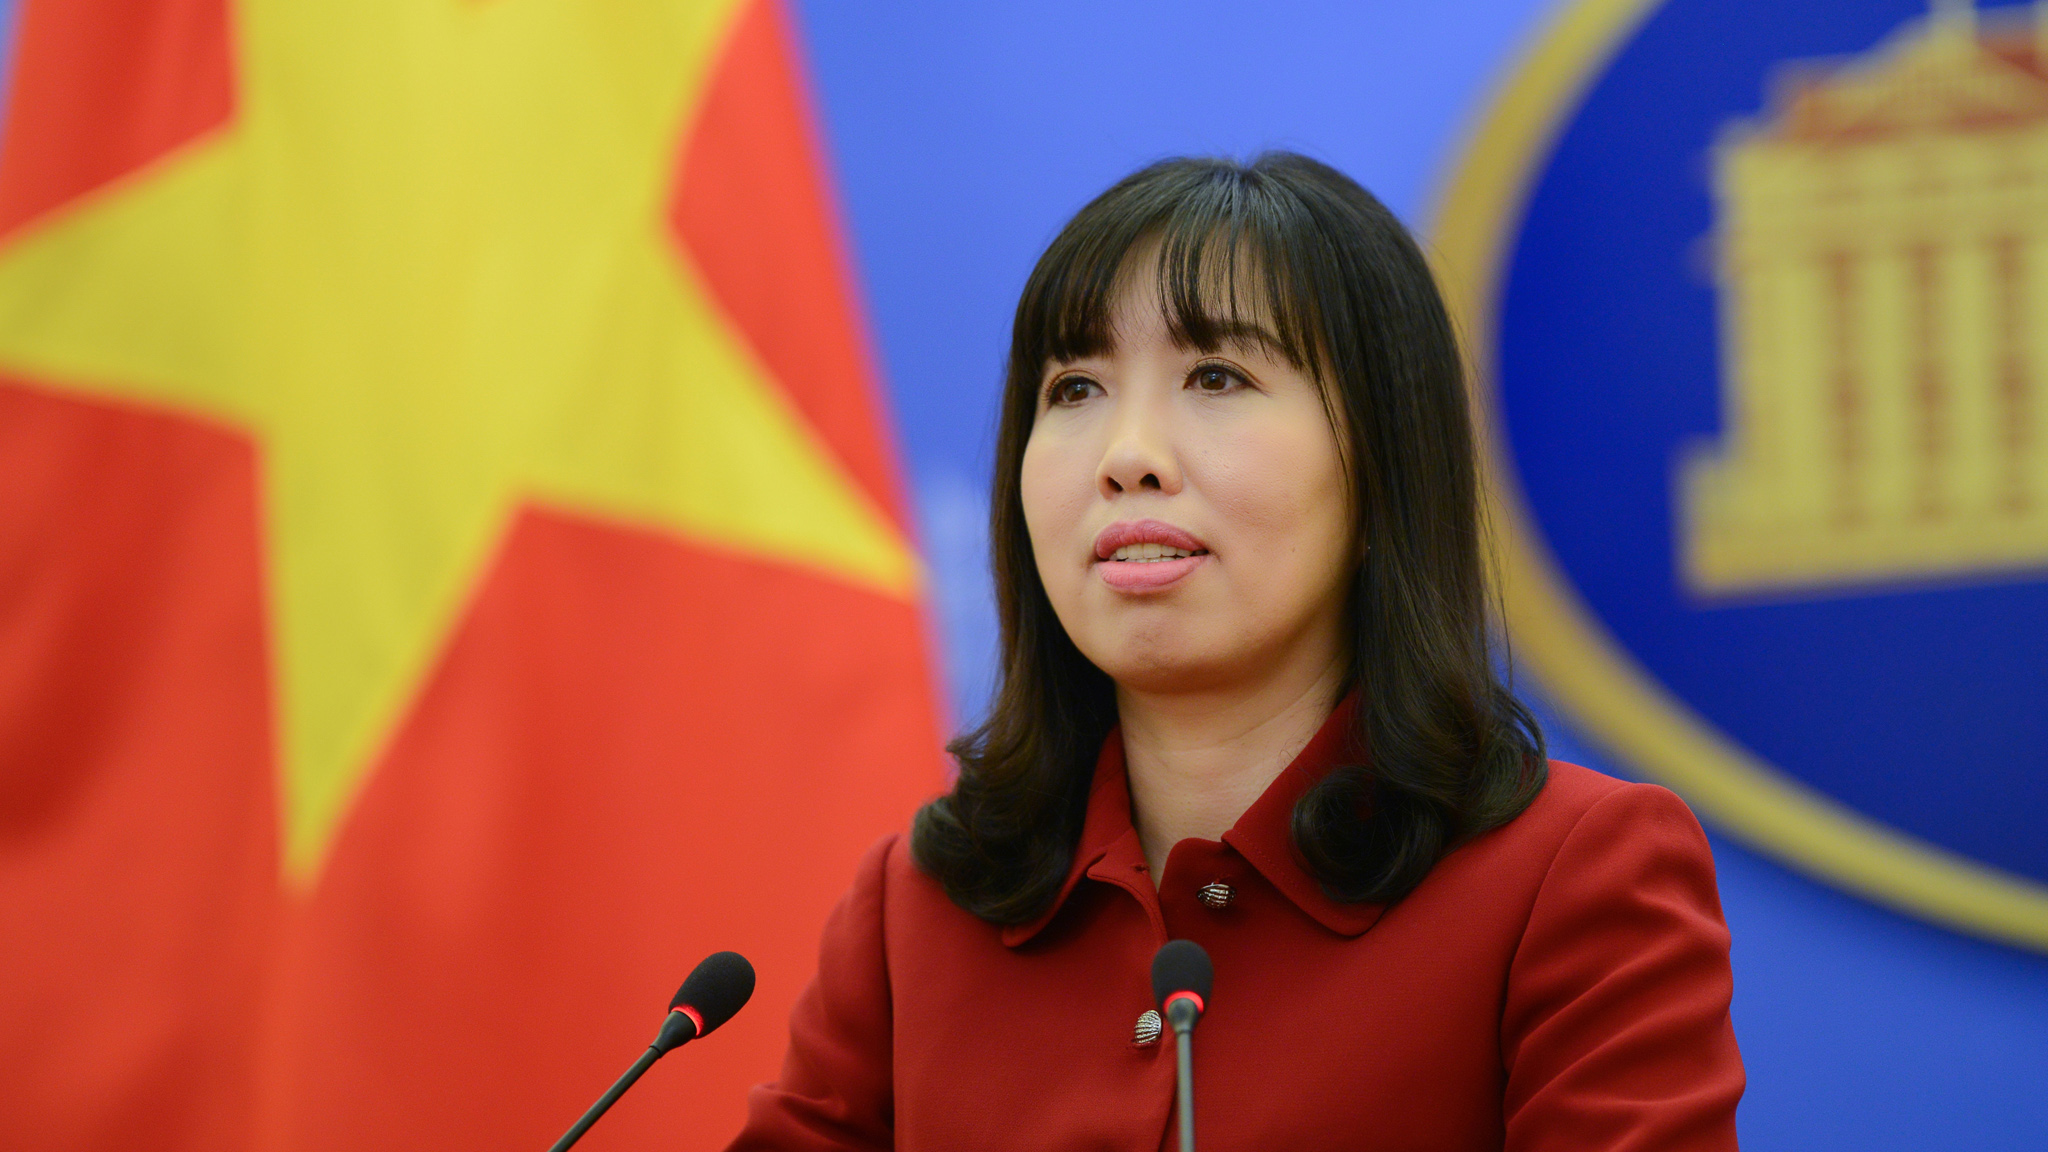 Vietnam's response to accusation of fugitive Trinh Xuan Thanh kidnap in Germany